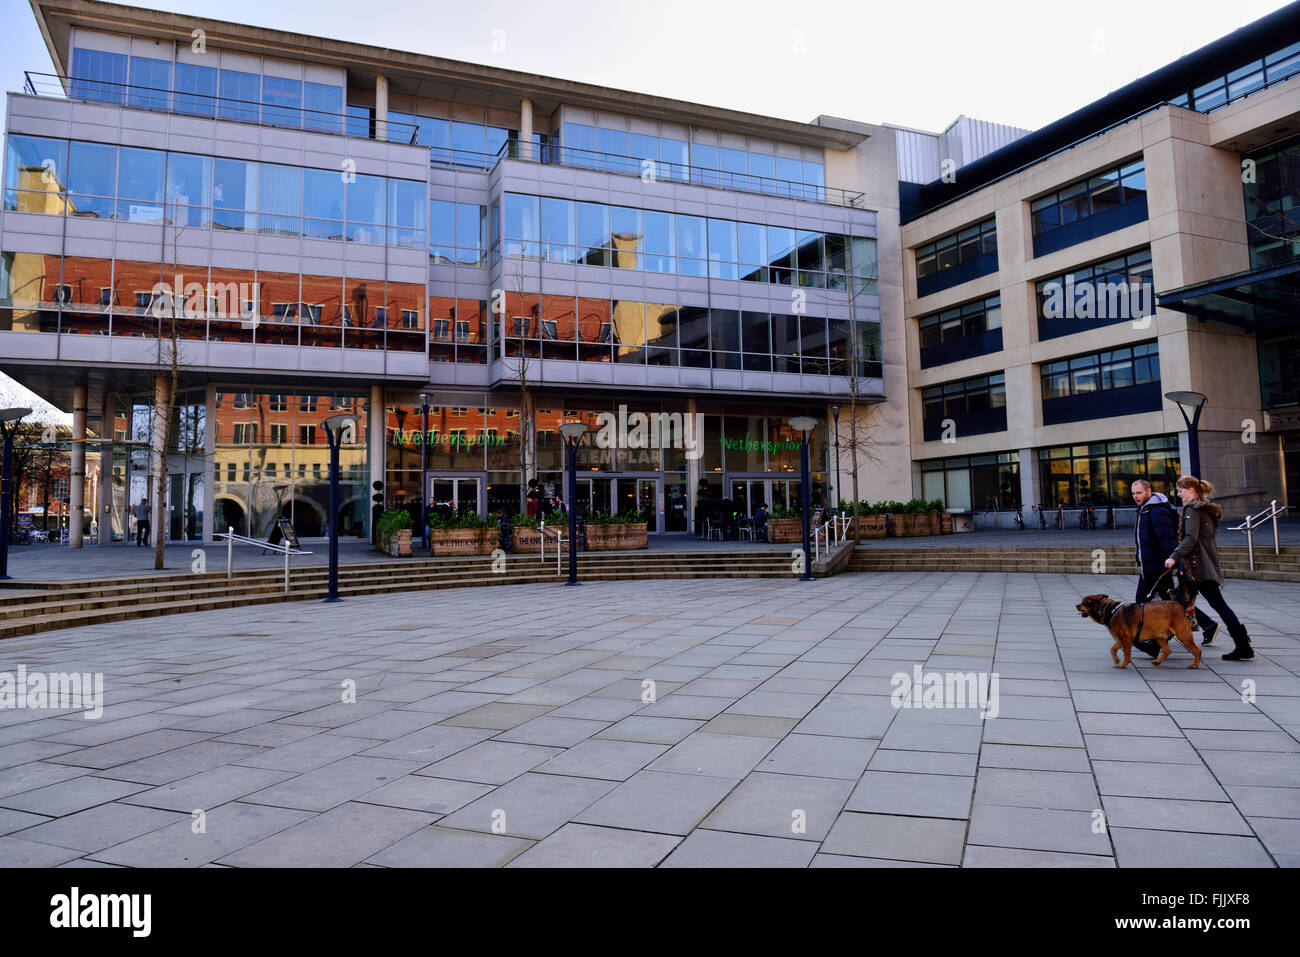 Temple Quay House, Knights Templer and Wetherspoon free house, Bristol - Stock Image